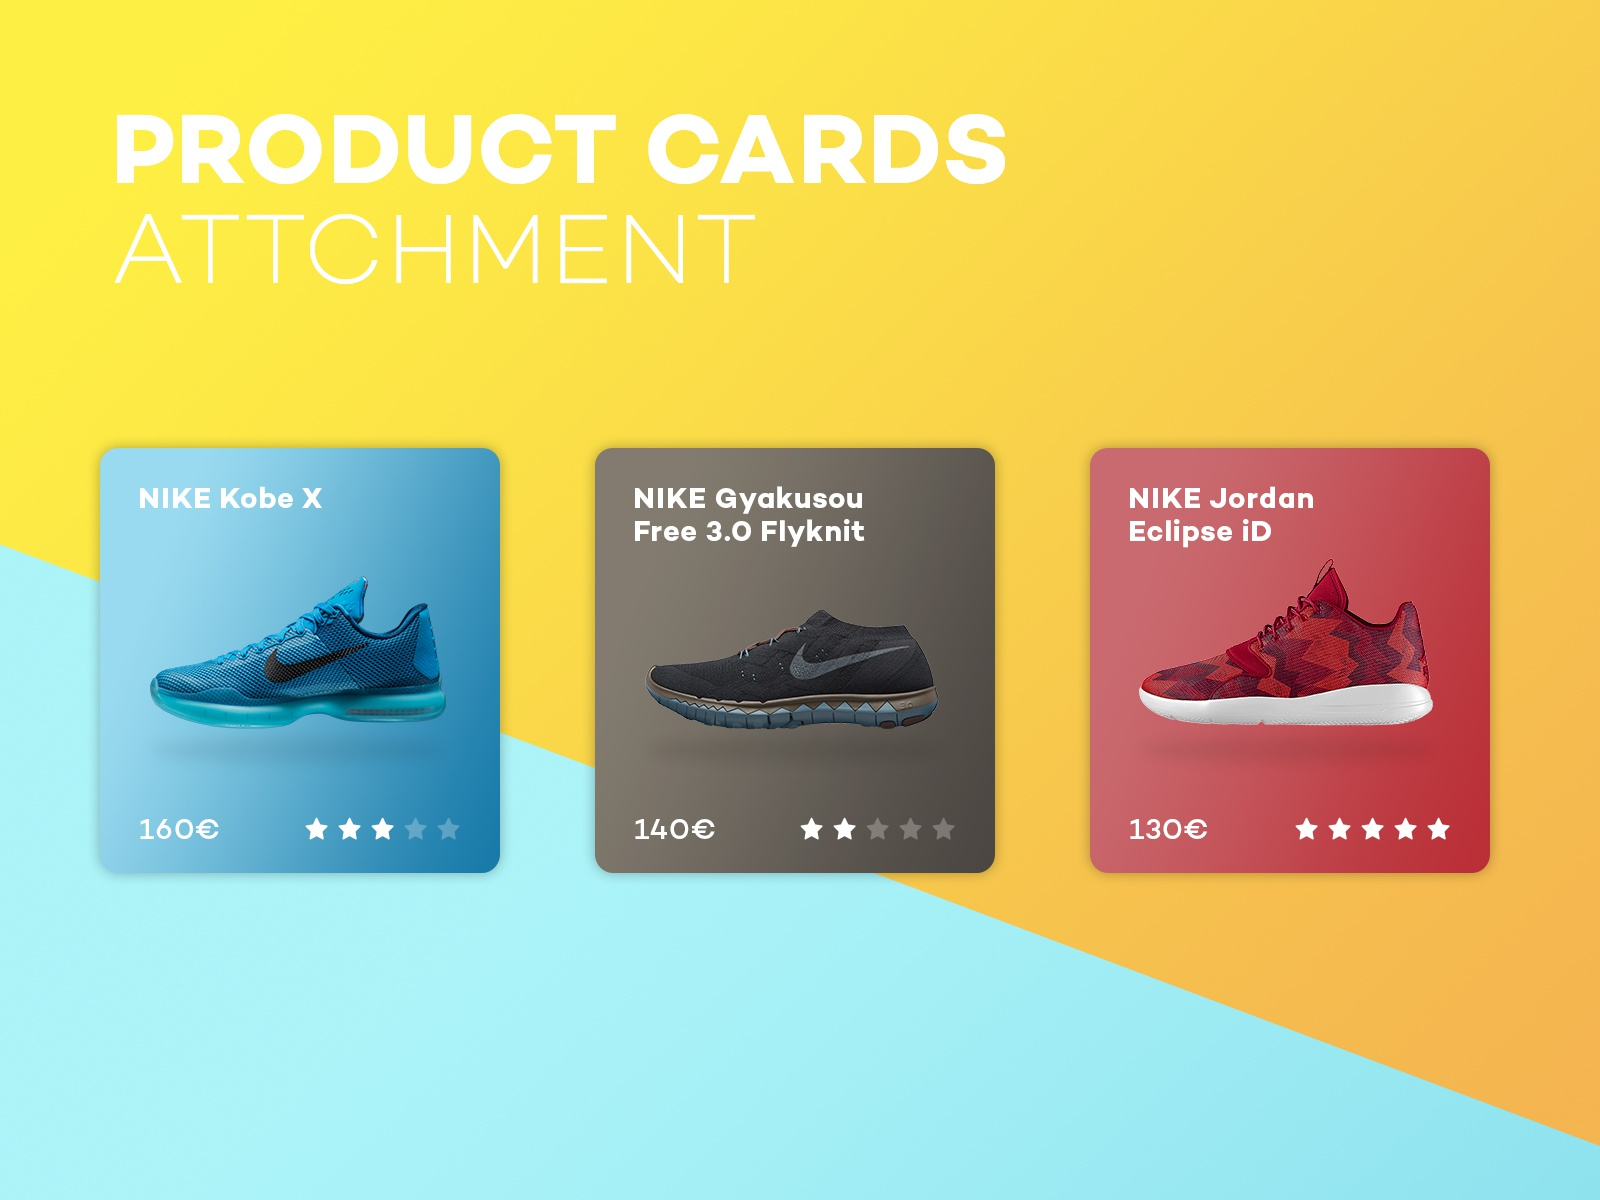 Products cards visual